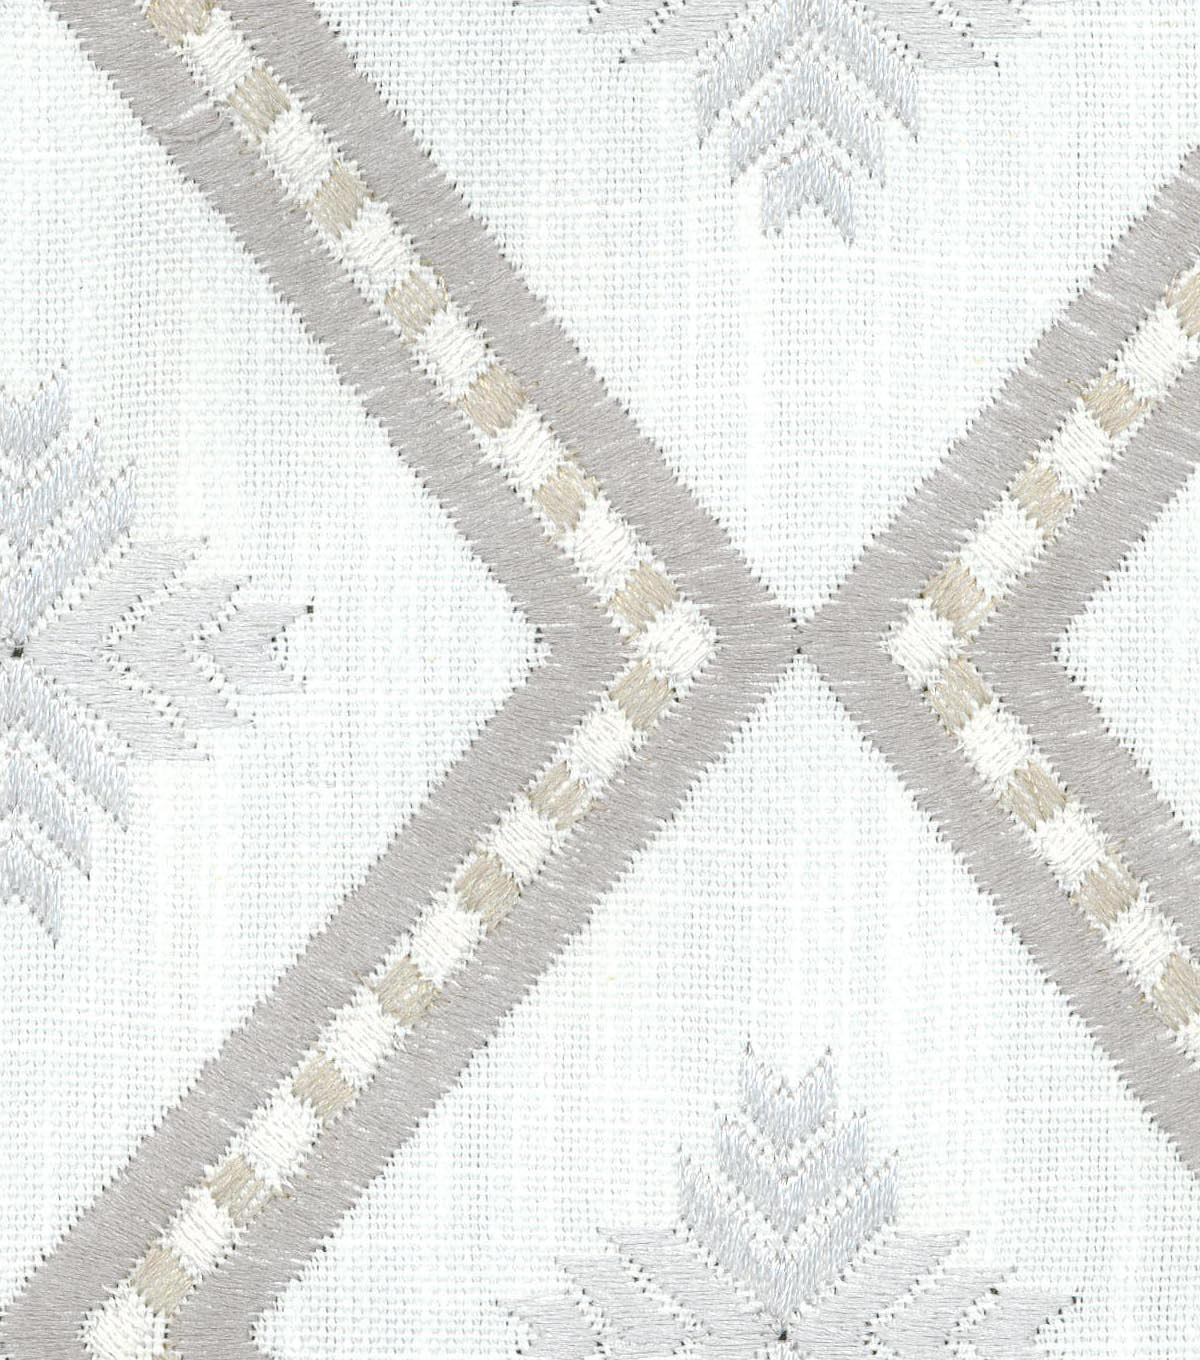 Genevieve Gorder Embroidered Upholstery Fabric 54\u0027\u0027-Steam Kyss